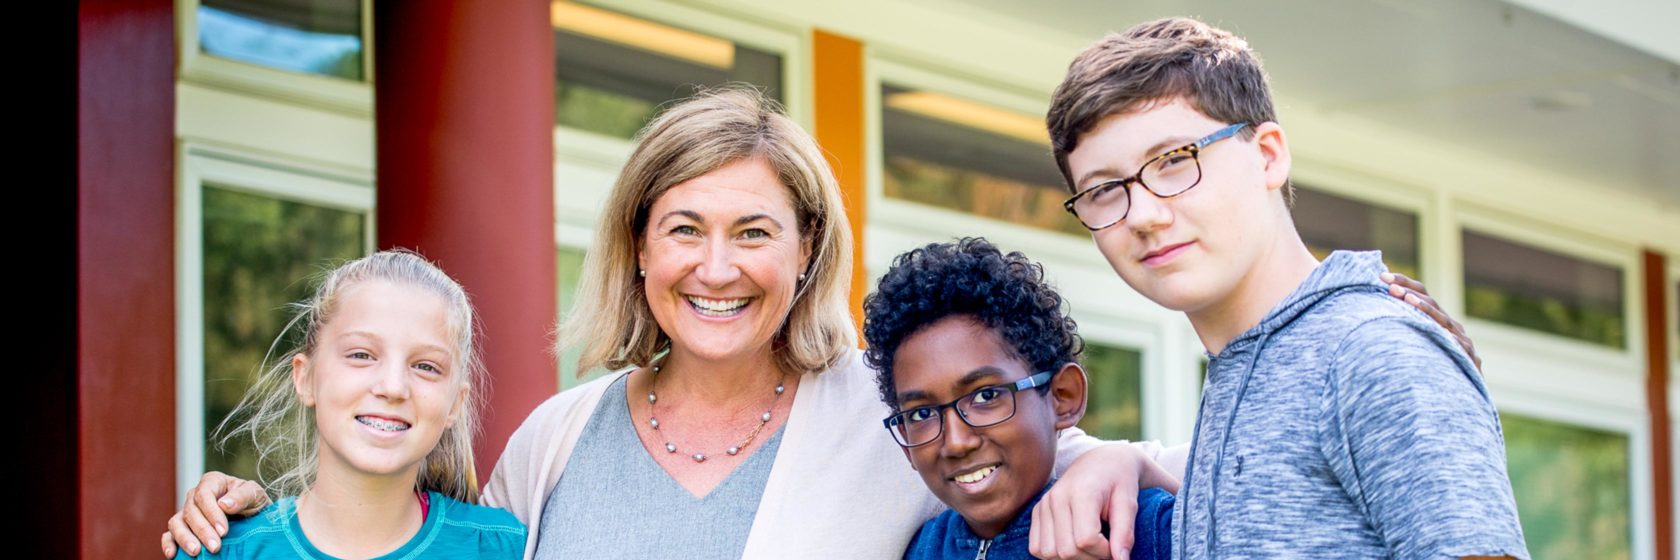 The head of school posing with students